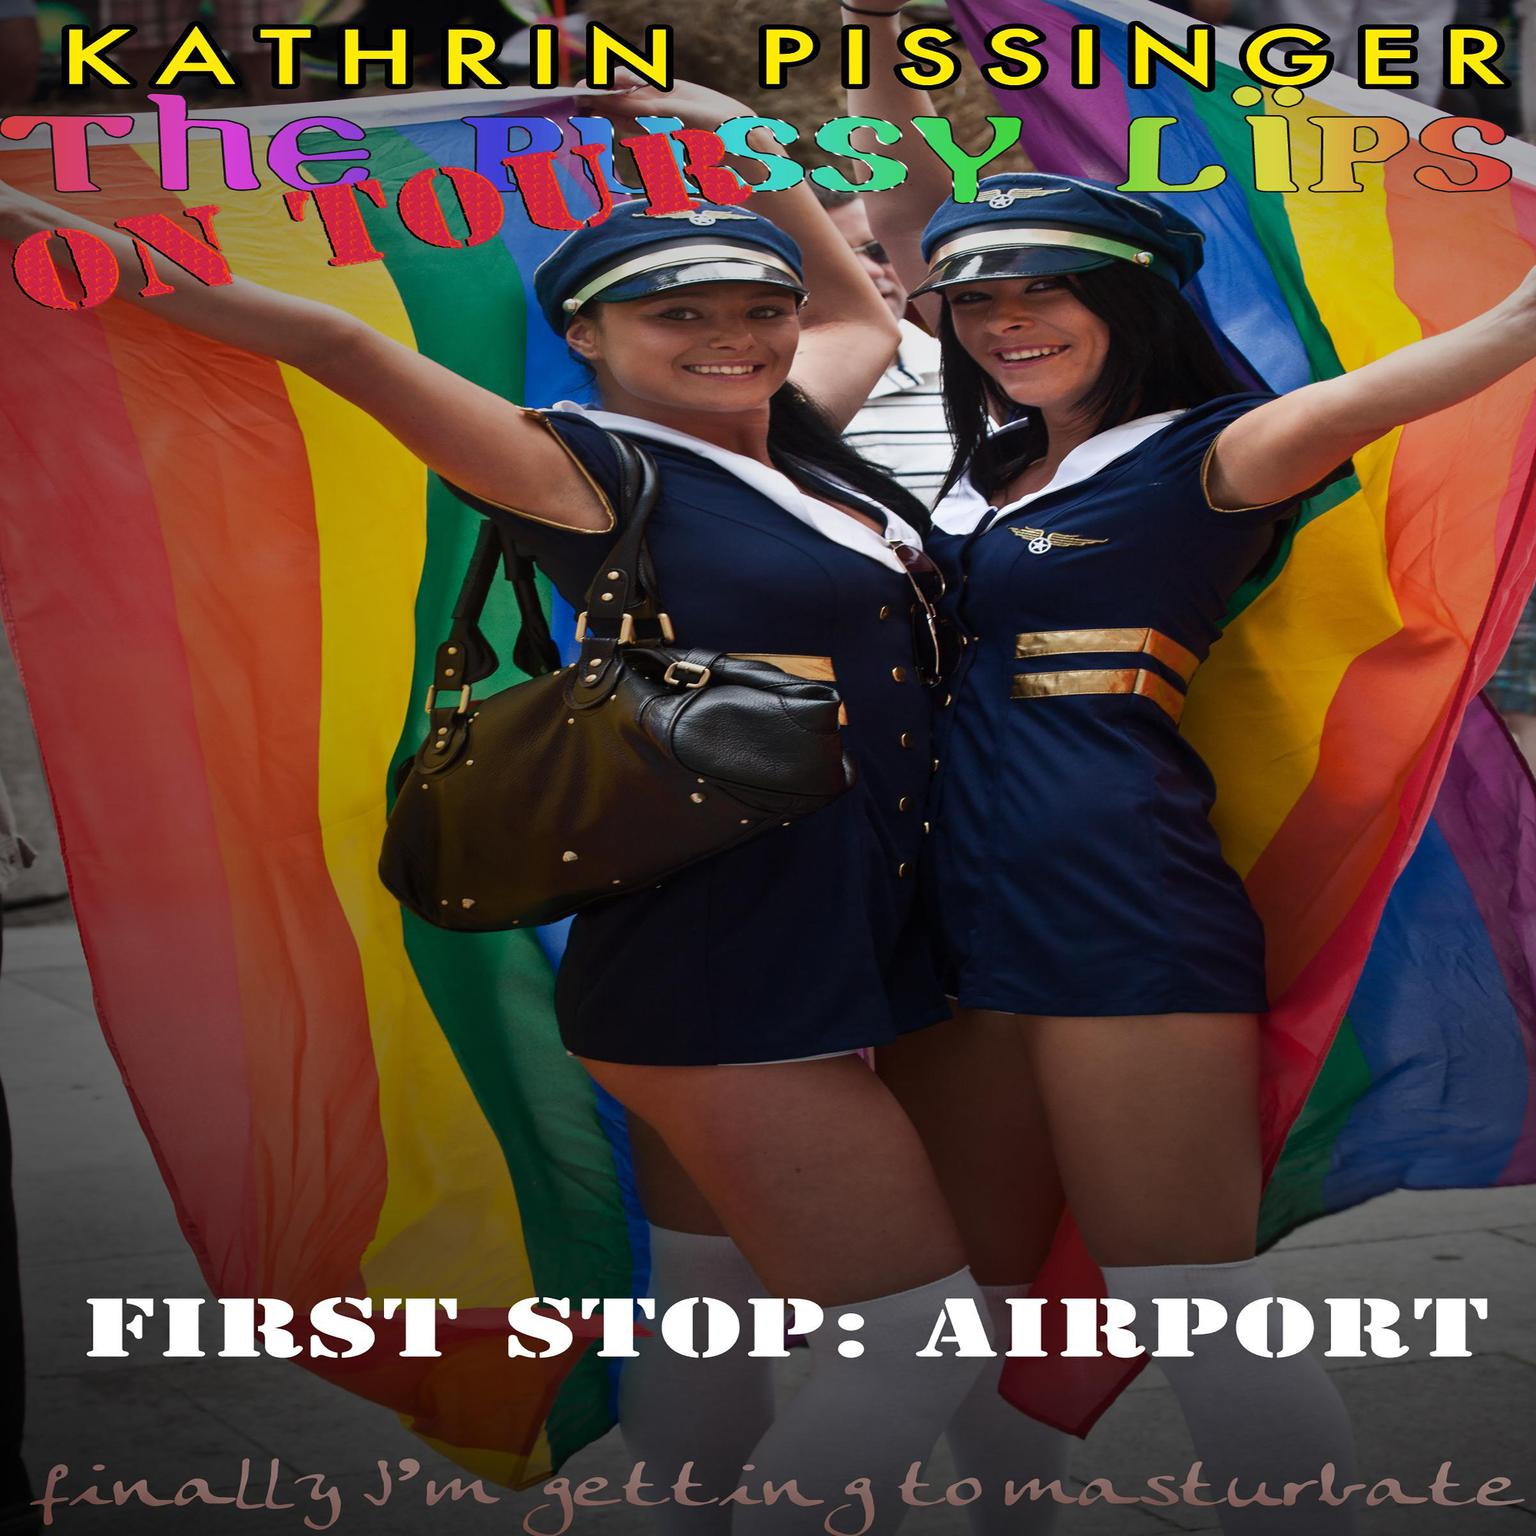 The PussyLips on Tour - First Stop: Airport: finally Im getting to masturbate Audiobook, by Kathrin Pissinger